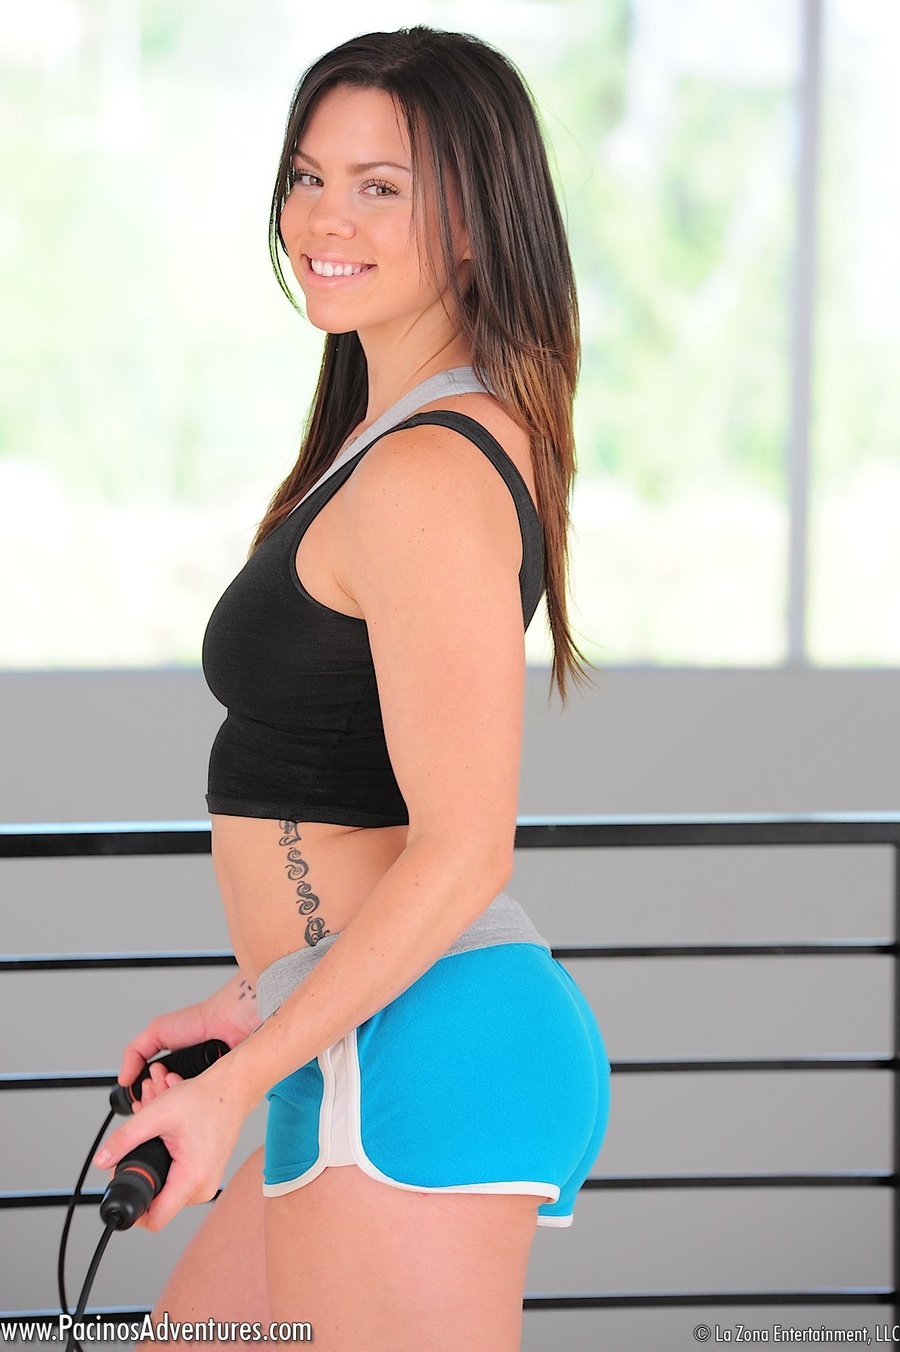 Very hot latina sports girl gets naked in the gym and exposes her nice boobs - XXXonXXX - Pic 10